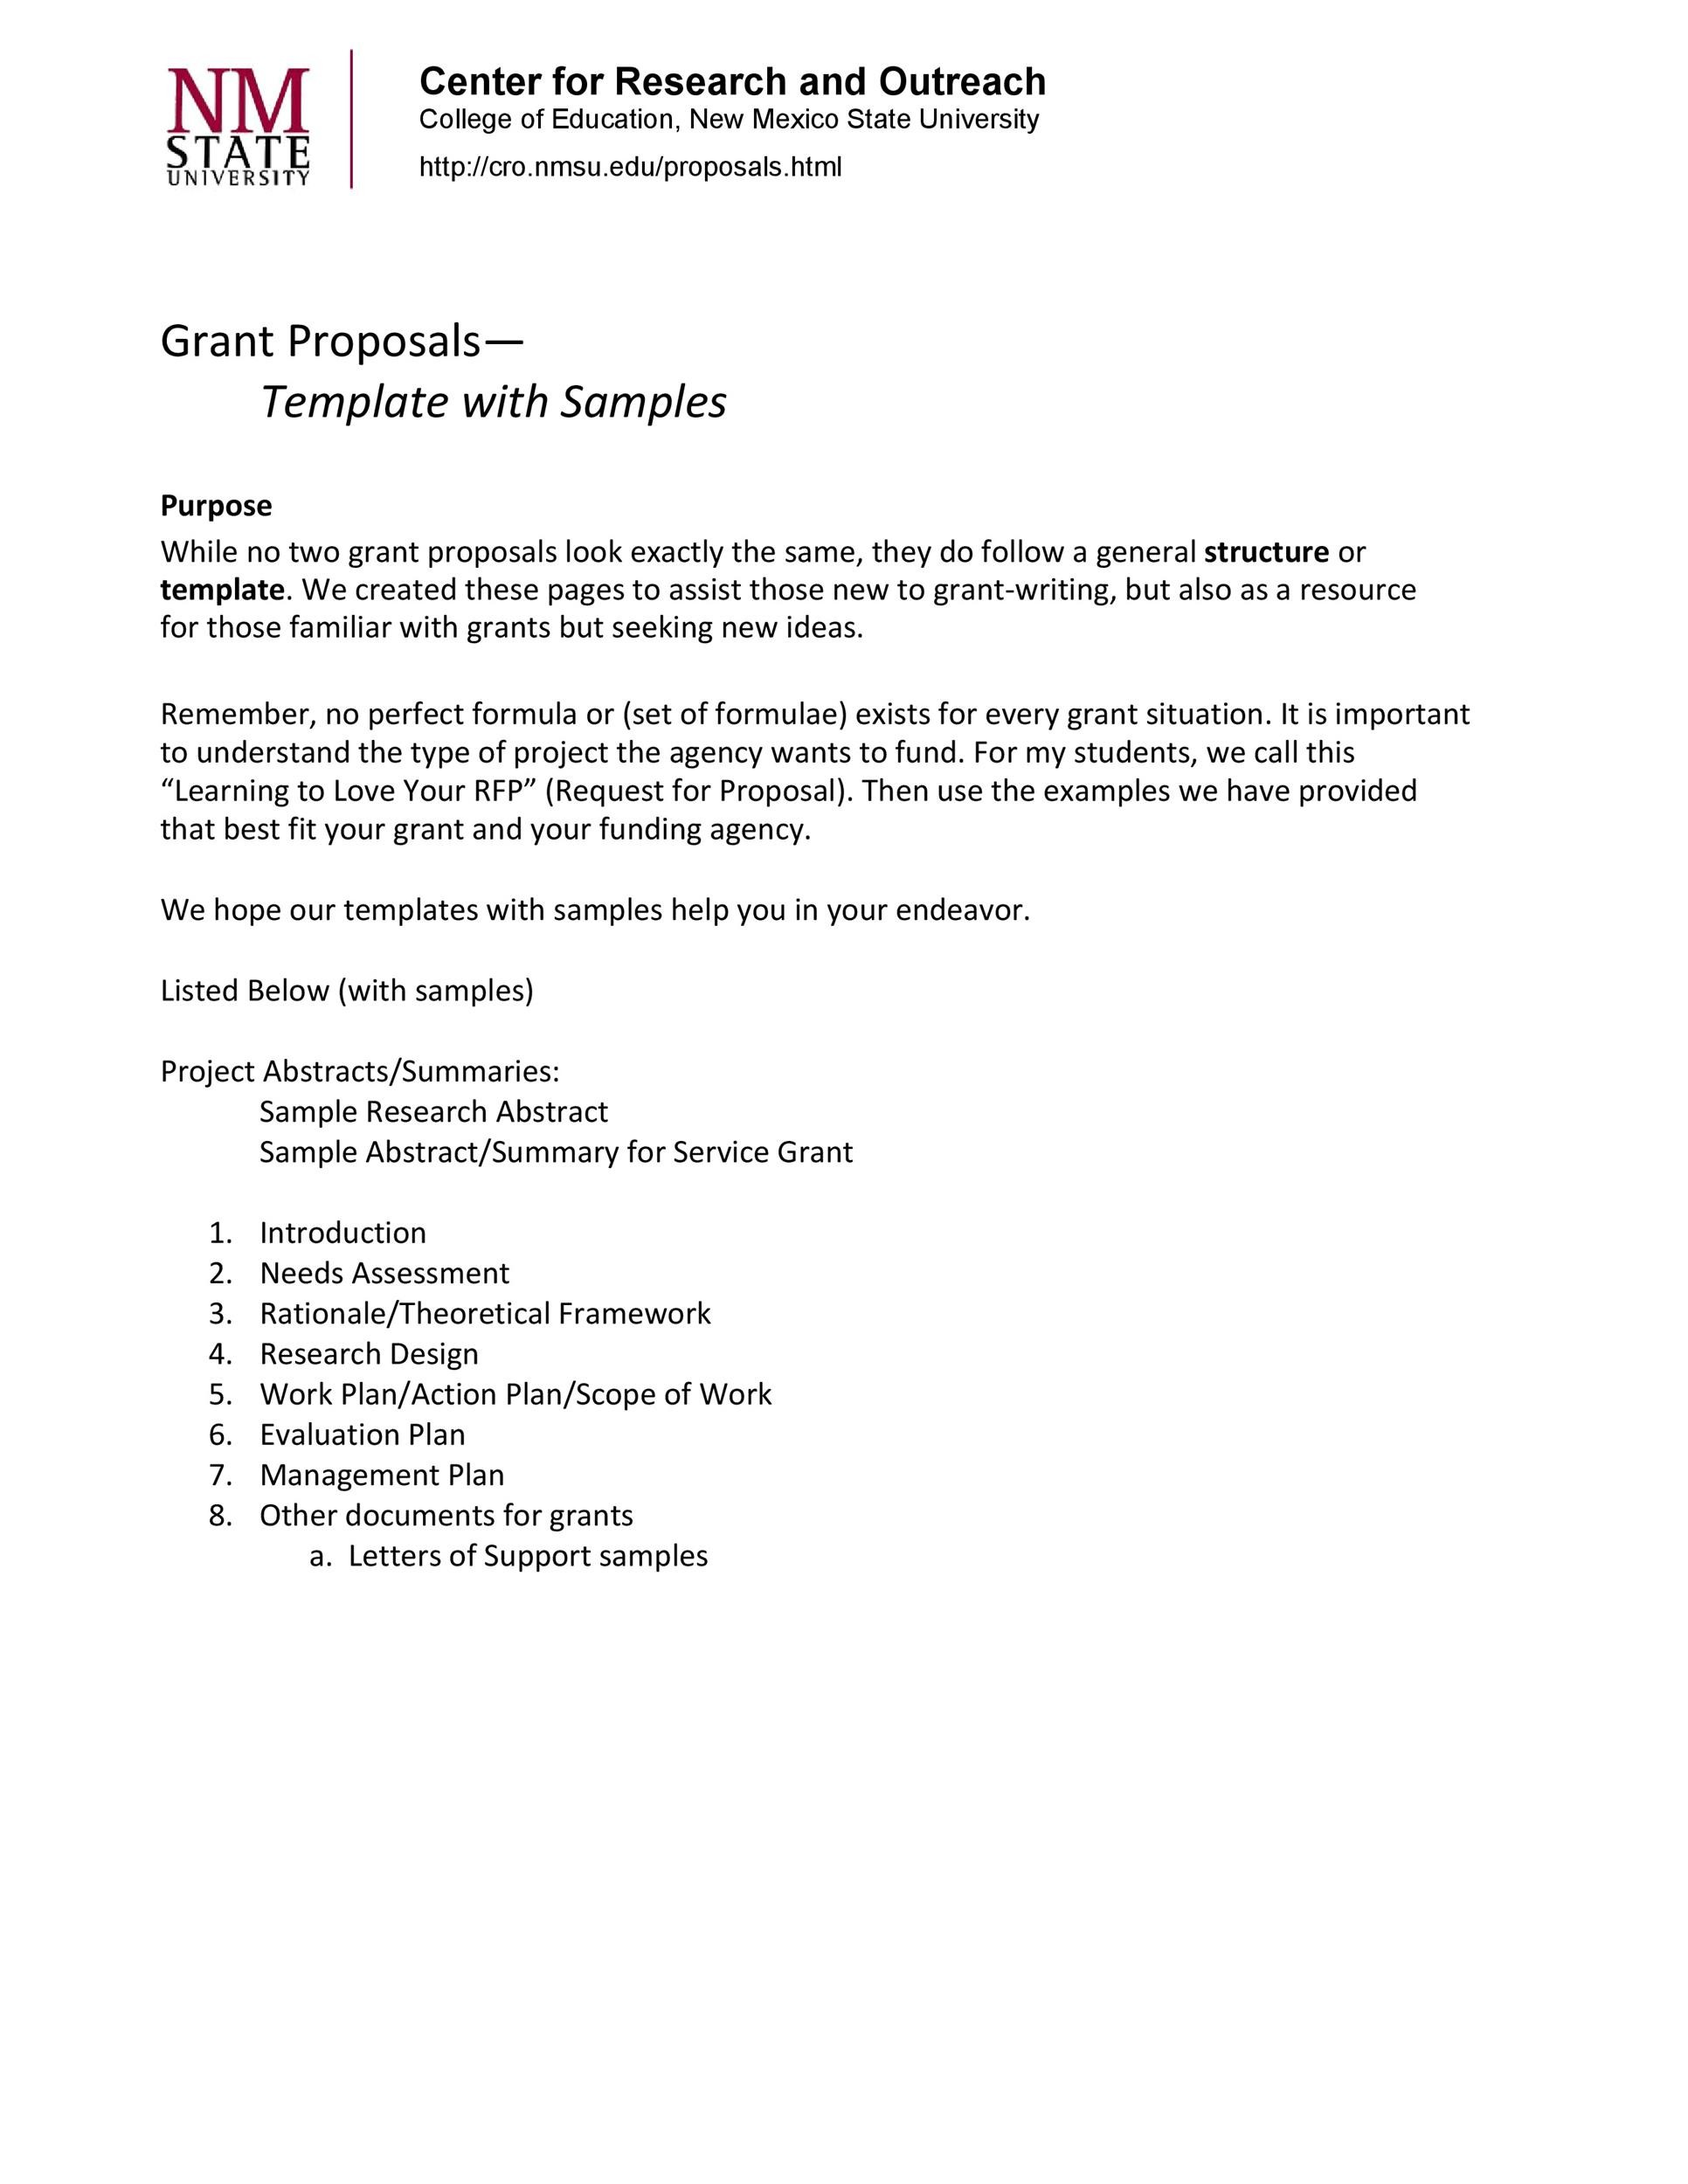 40 grant proposal templates nsf non profit research template lab grant proposal templates saigontimesfo